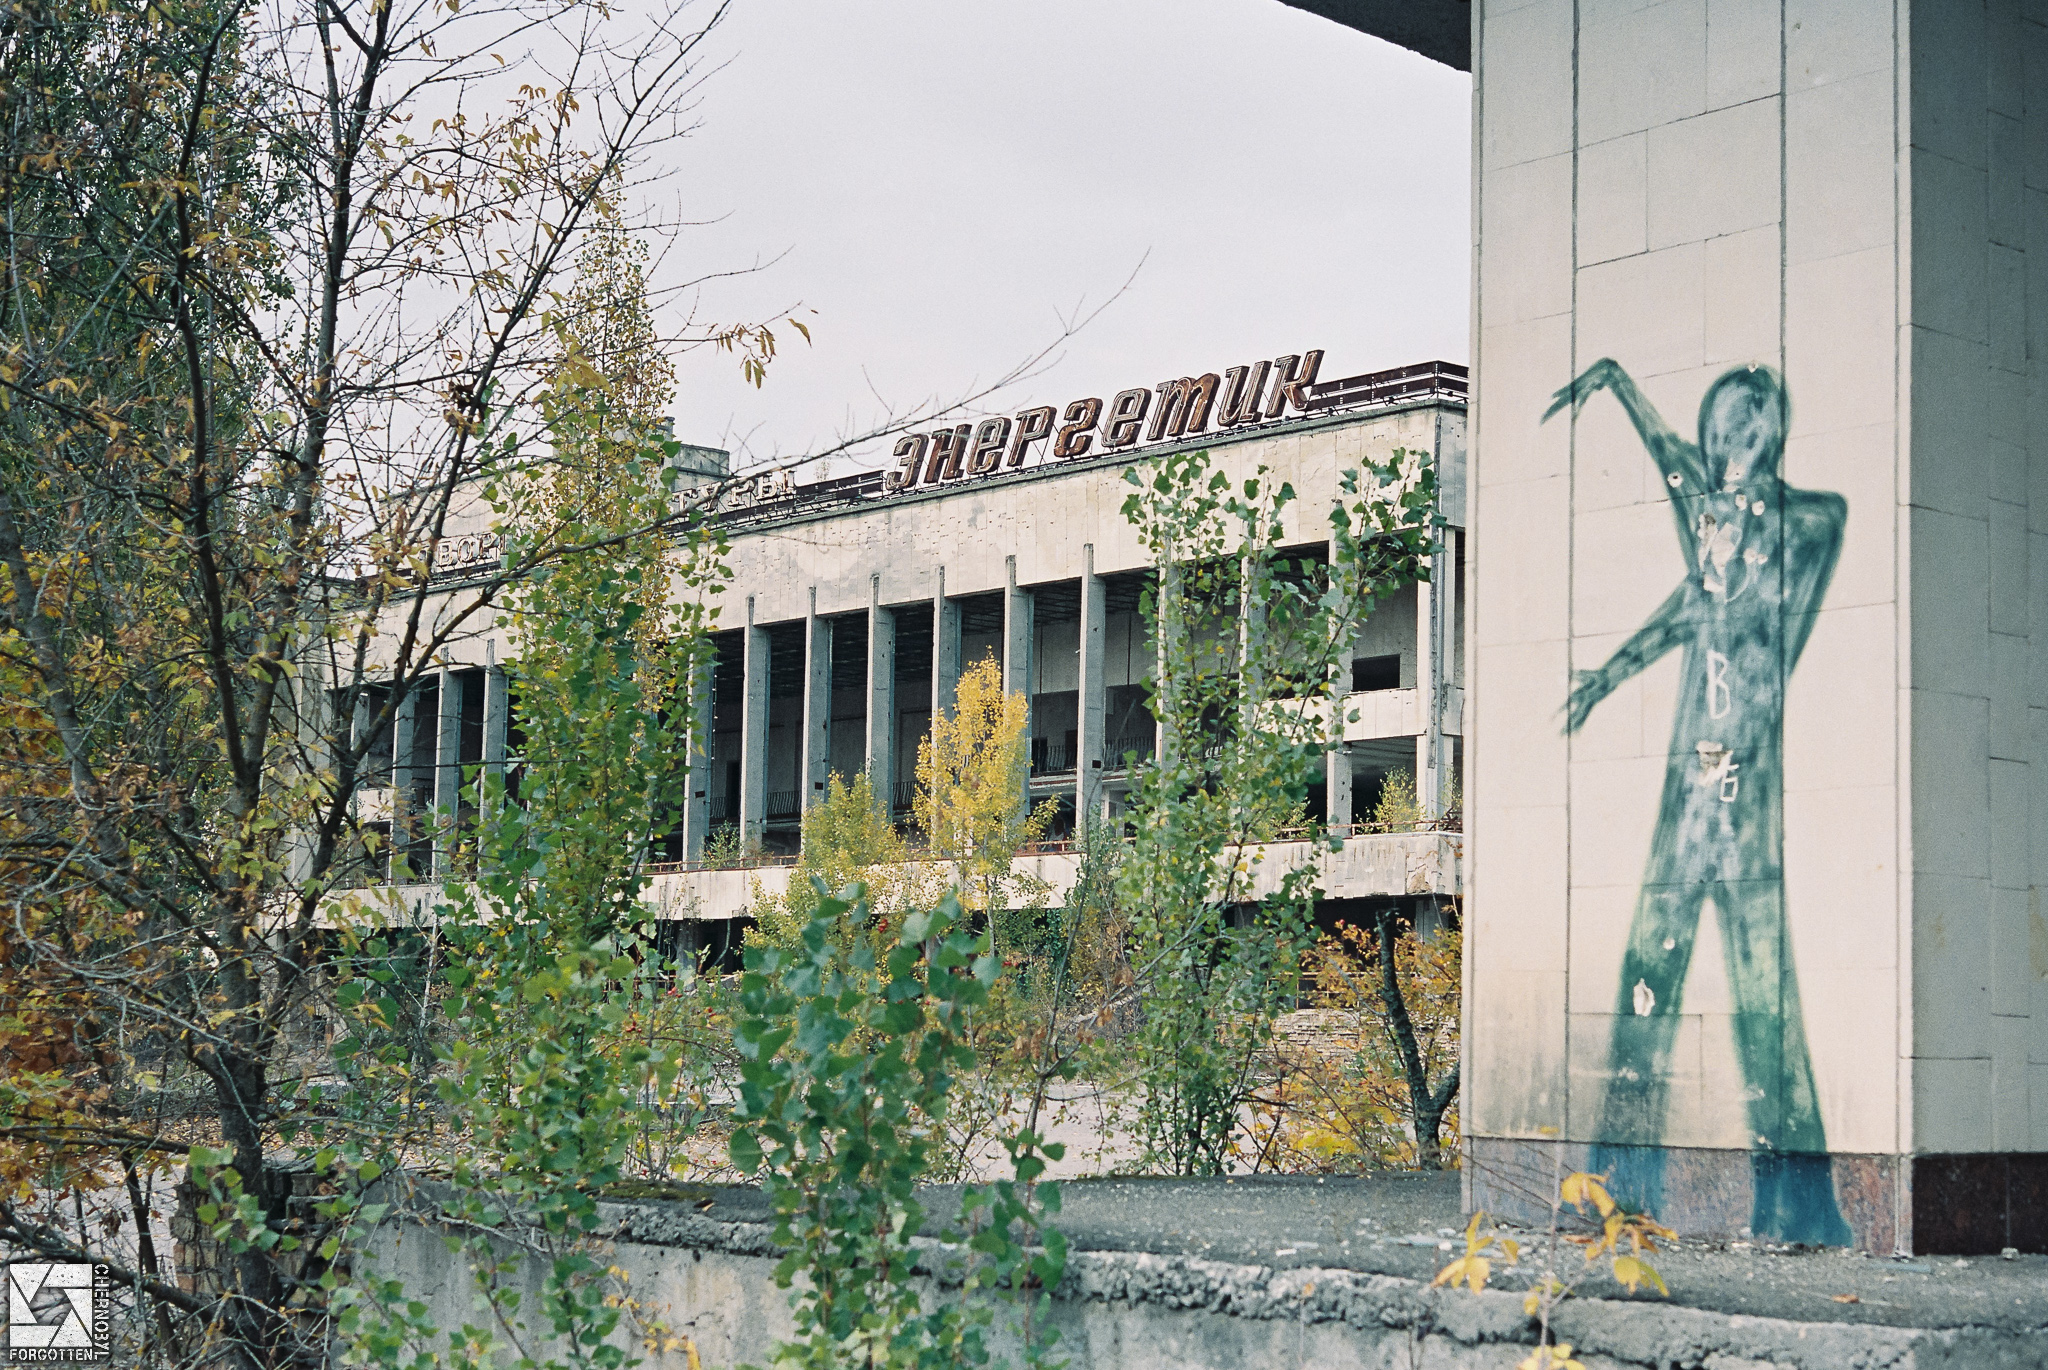 Lenin Square, Pripyat, on a 35mm film captured with Kiev 4 camera